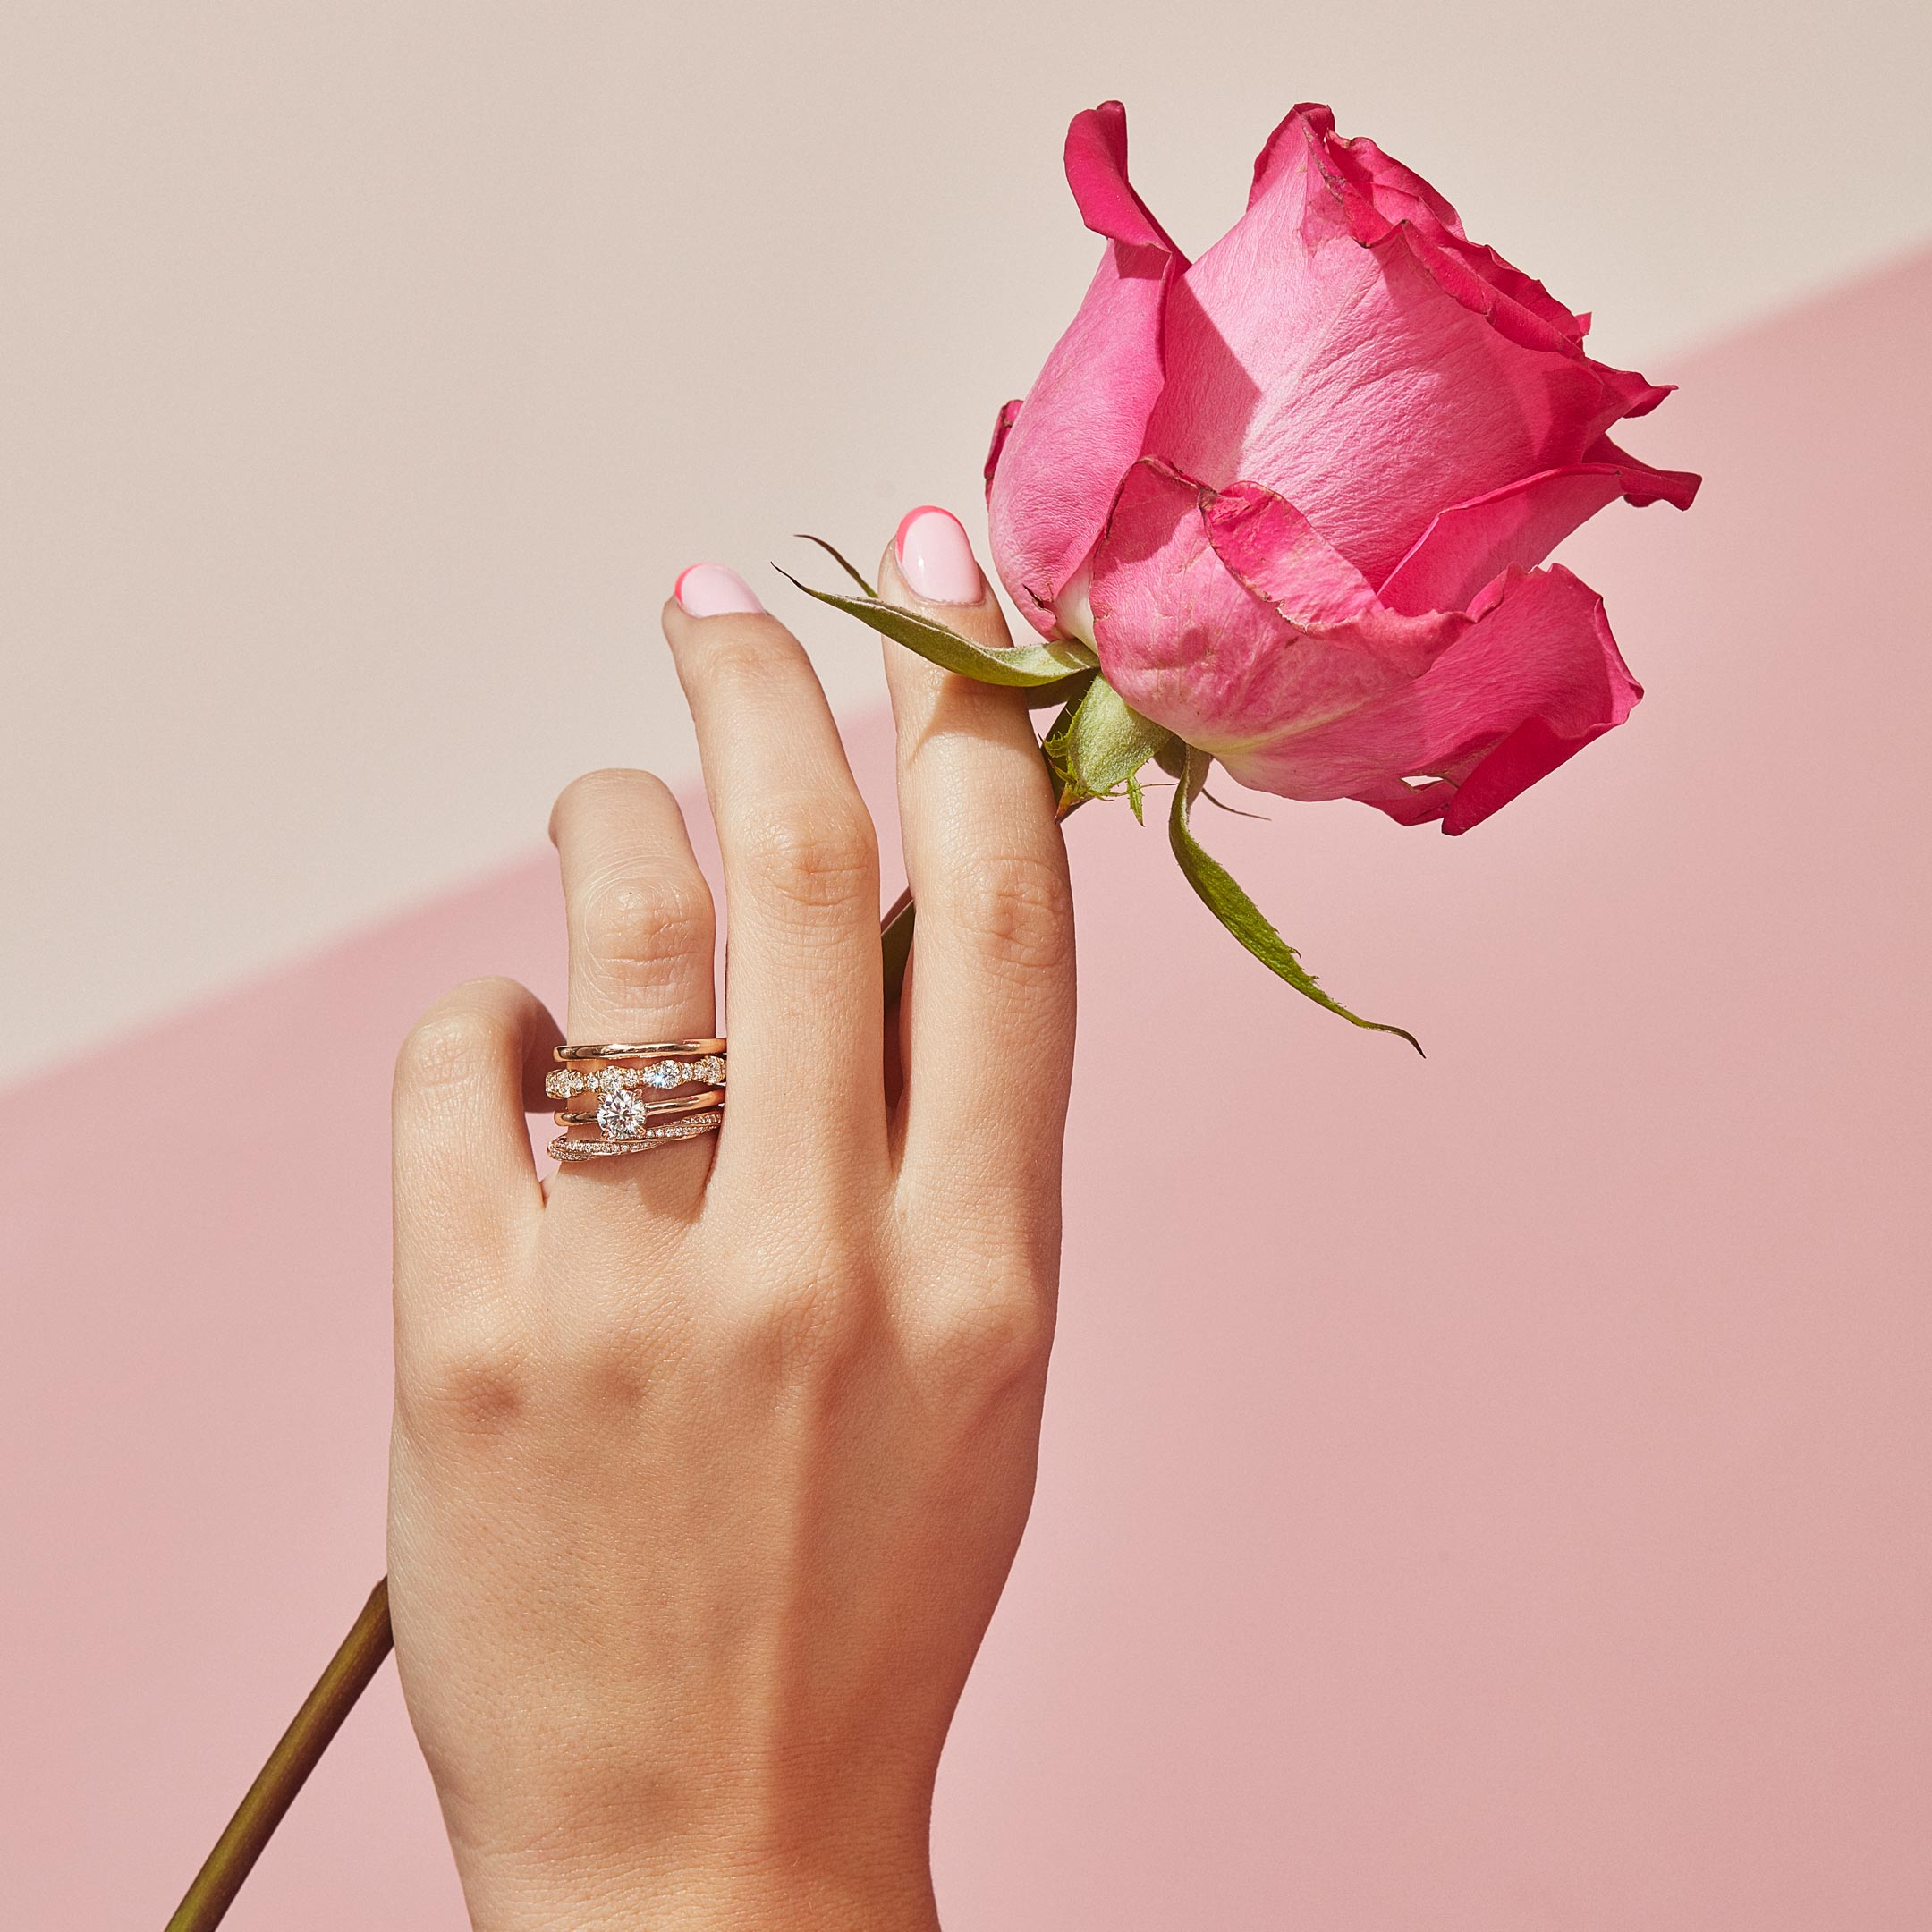 Colette Round Brilliant Solitaire Engagement Ring with a solid band in 18k Rose Gold Hand with Rose Lifestyle by Oui by Jean Dousset